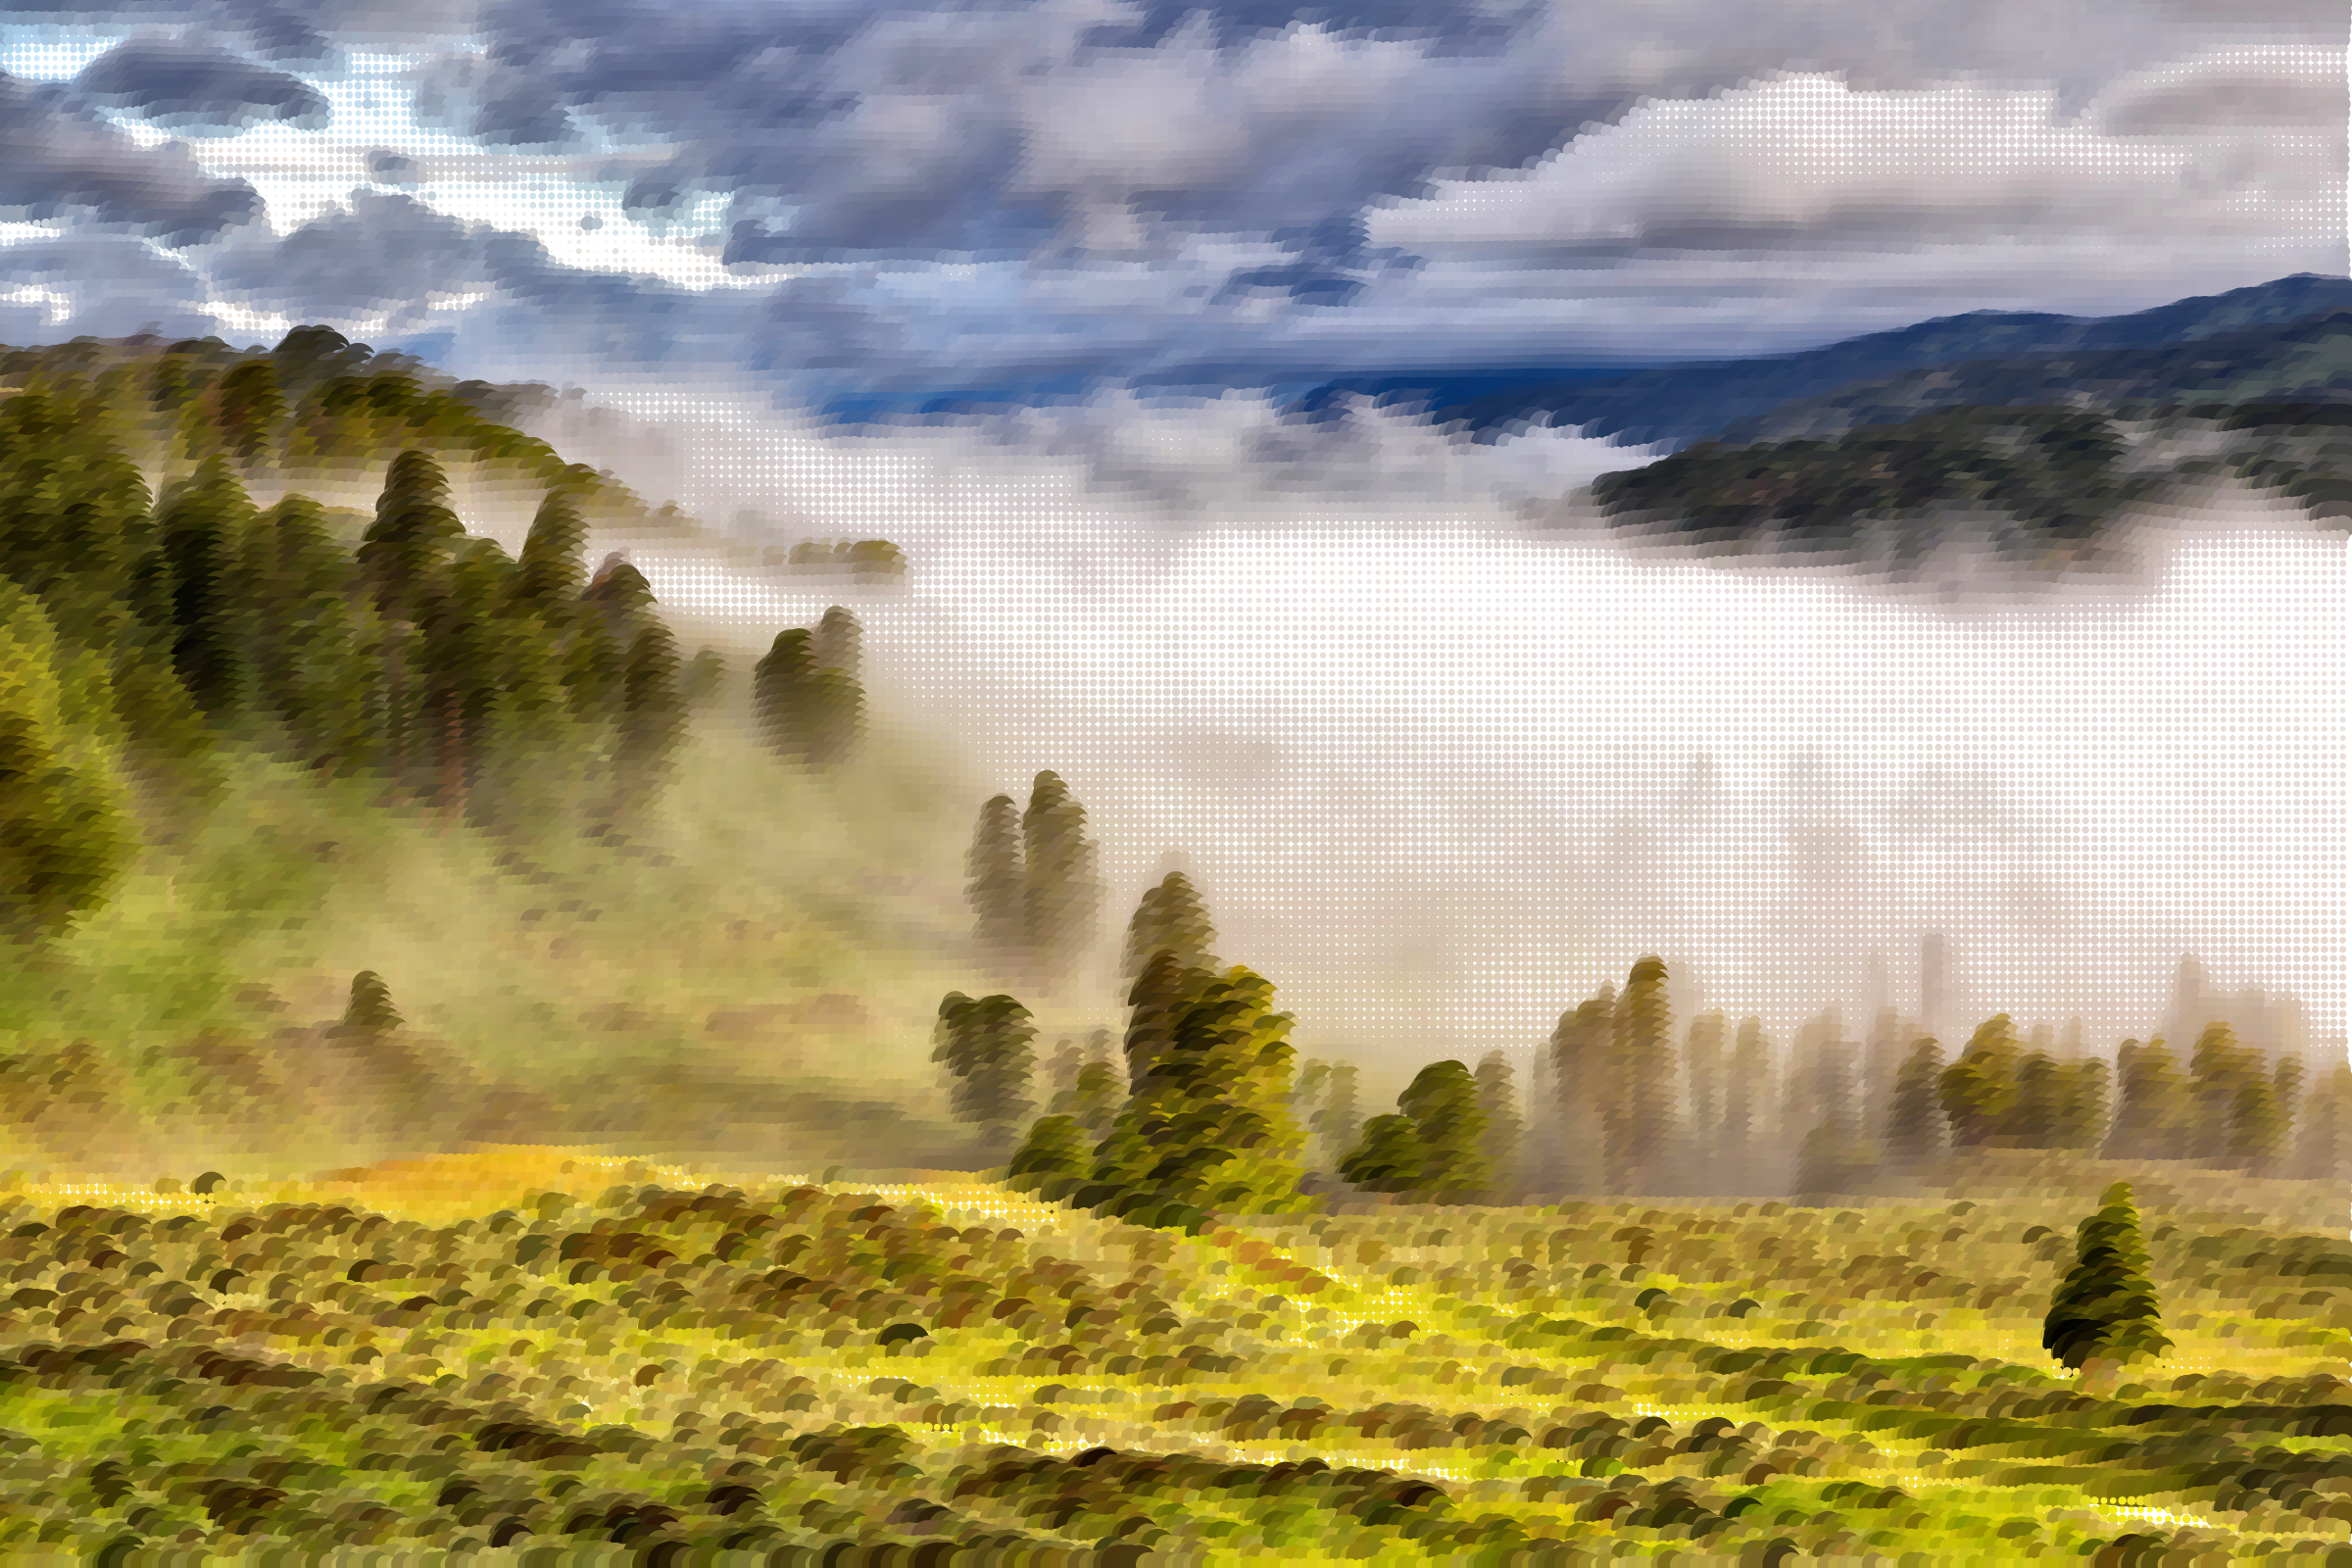 Surreal Misty Valley by GDJ